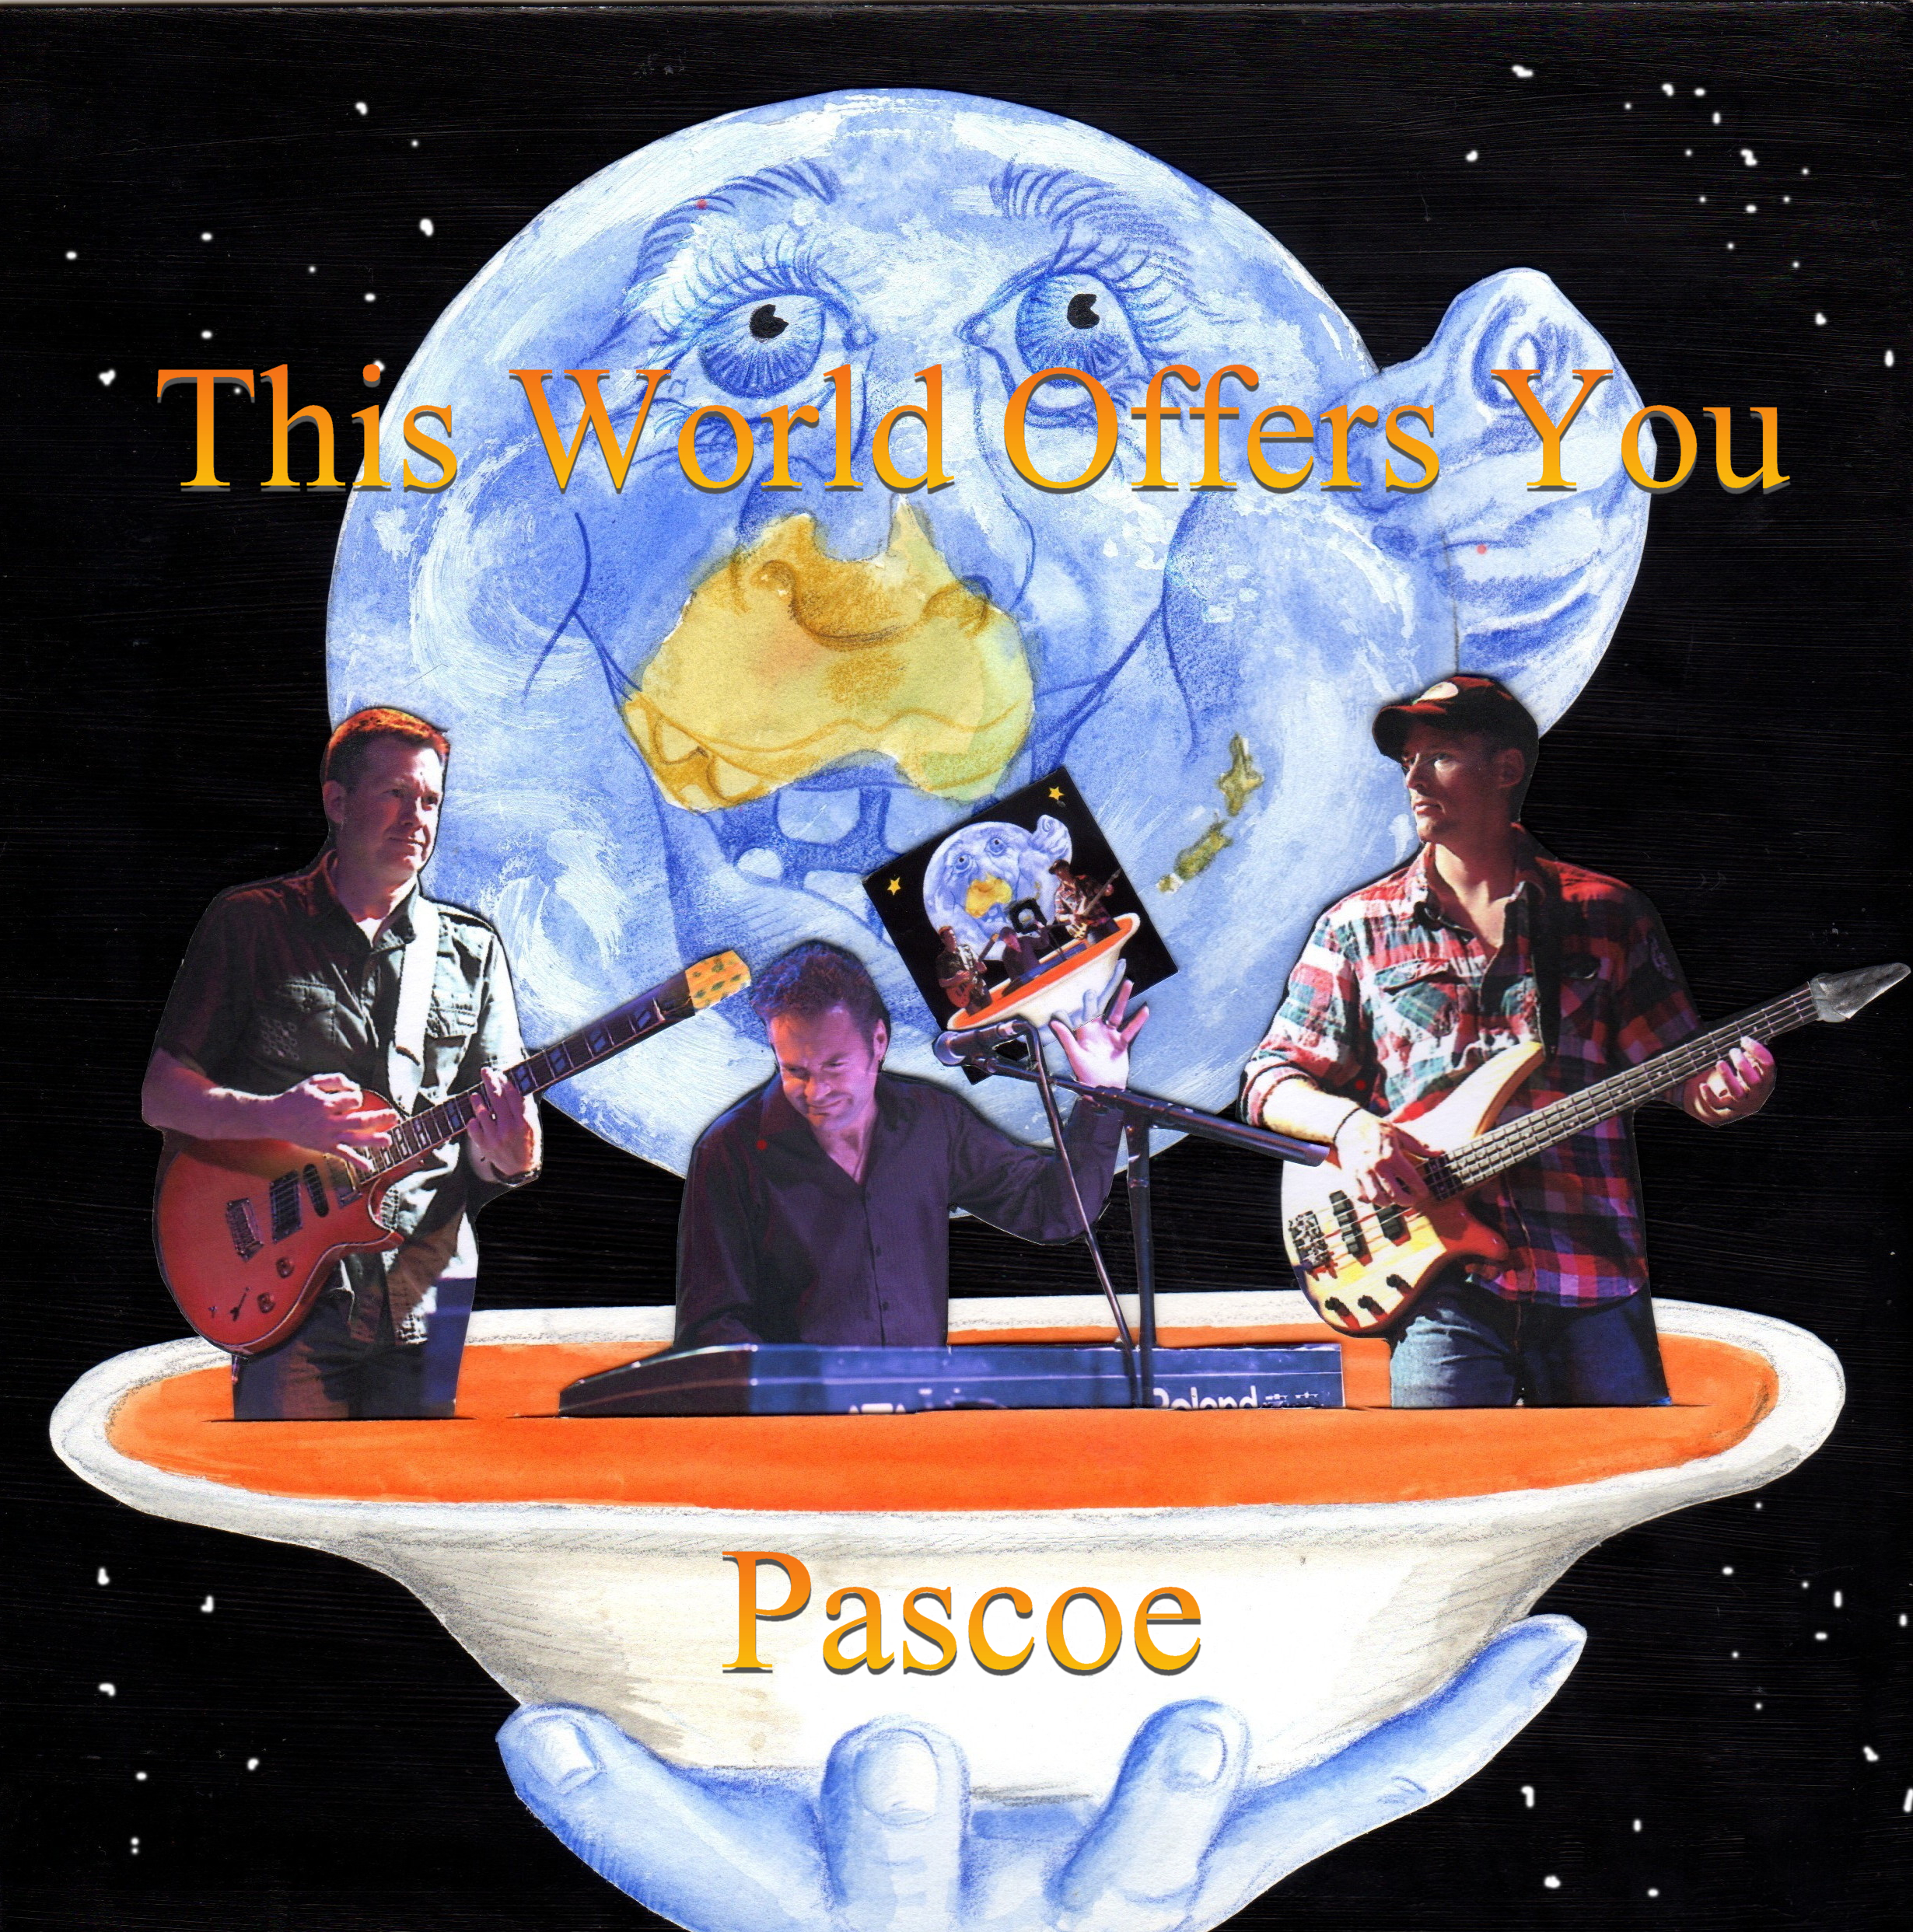 This World Offers You  CD Cover - Pascoe